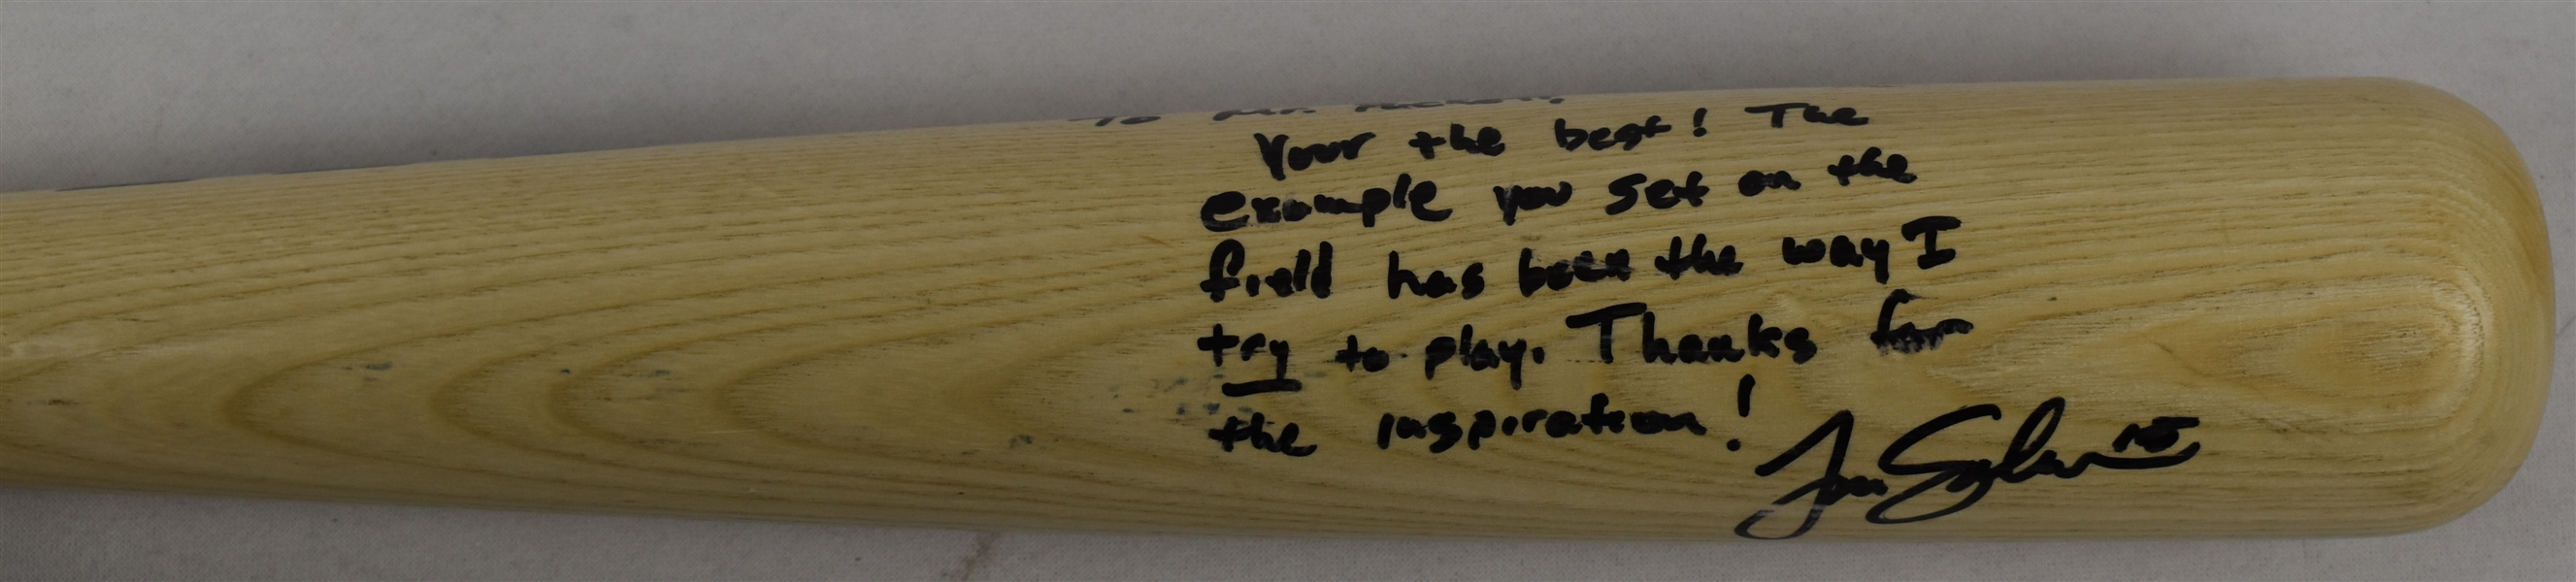 Tim Salmon California Angels Game Used & Autographed Bat w/Puckett Family Provenance